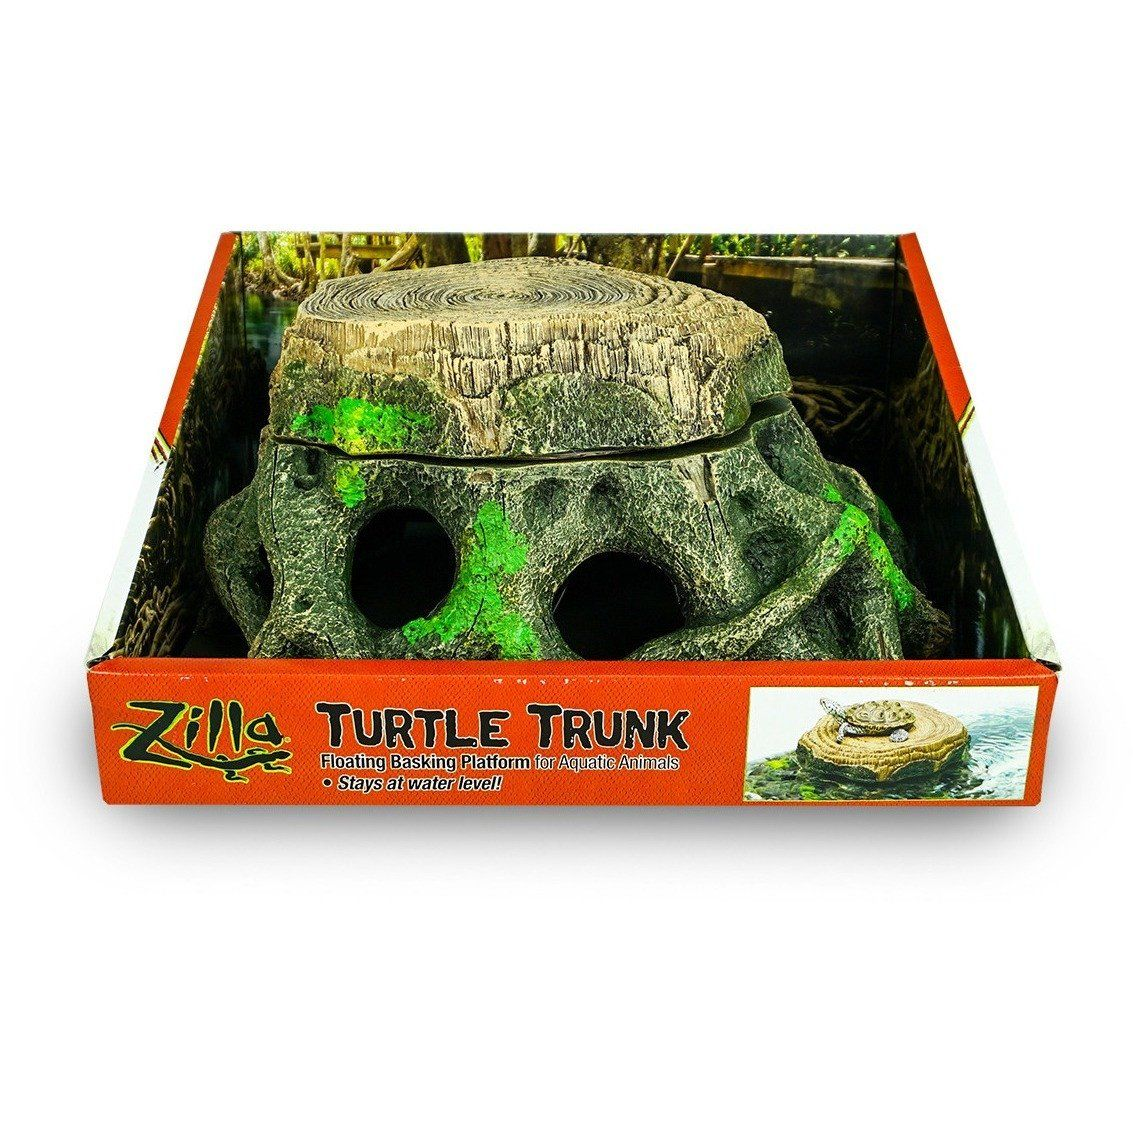 Zilla Freestanding Floating Basking Platform - Turtle Trunk